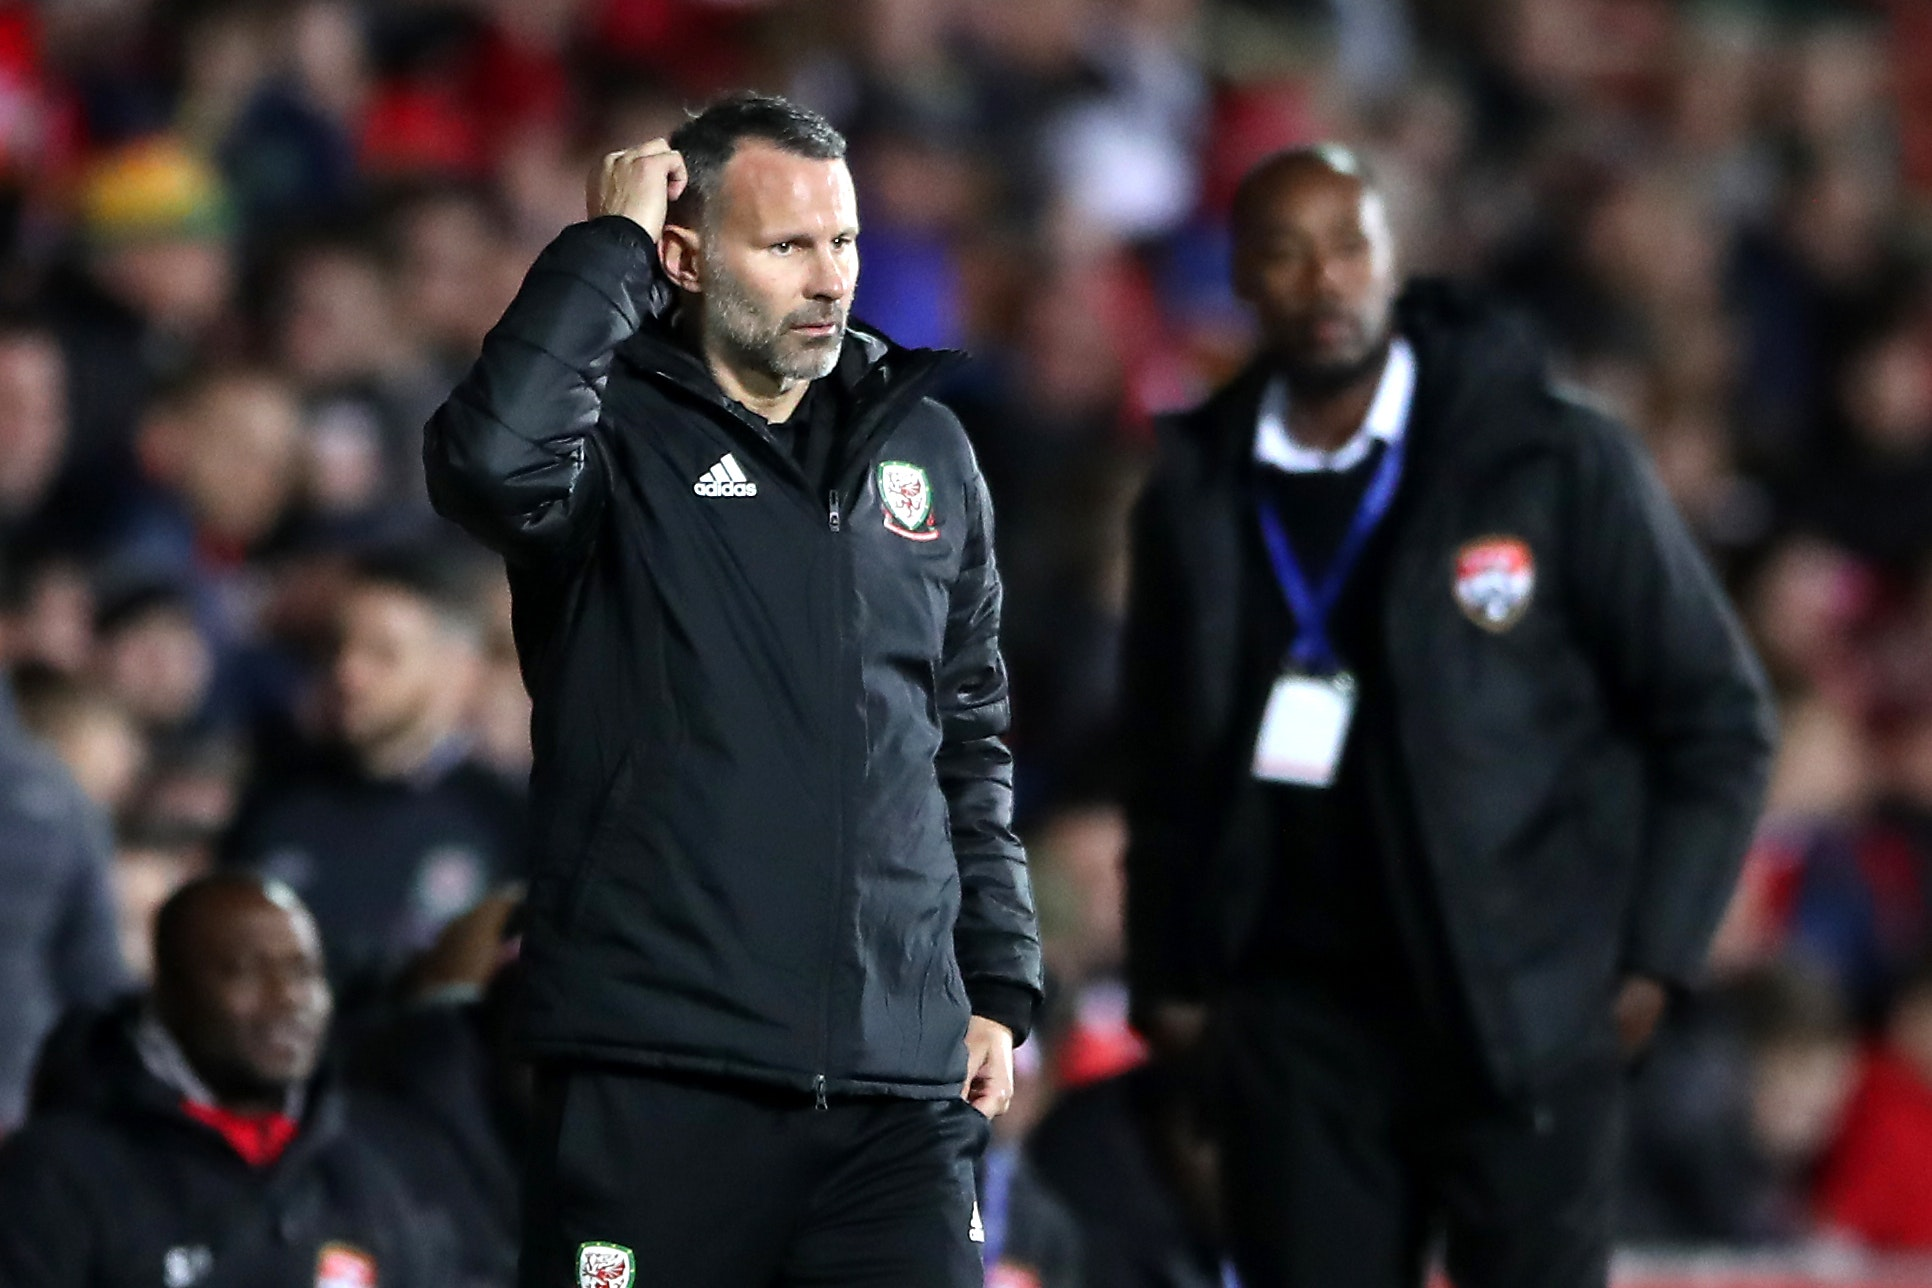 Wales manager Ryan Giggs explained the absence of Gareth Bale and other key players from the friendly against Trinidad & Tobago